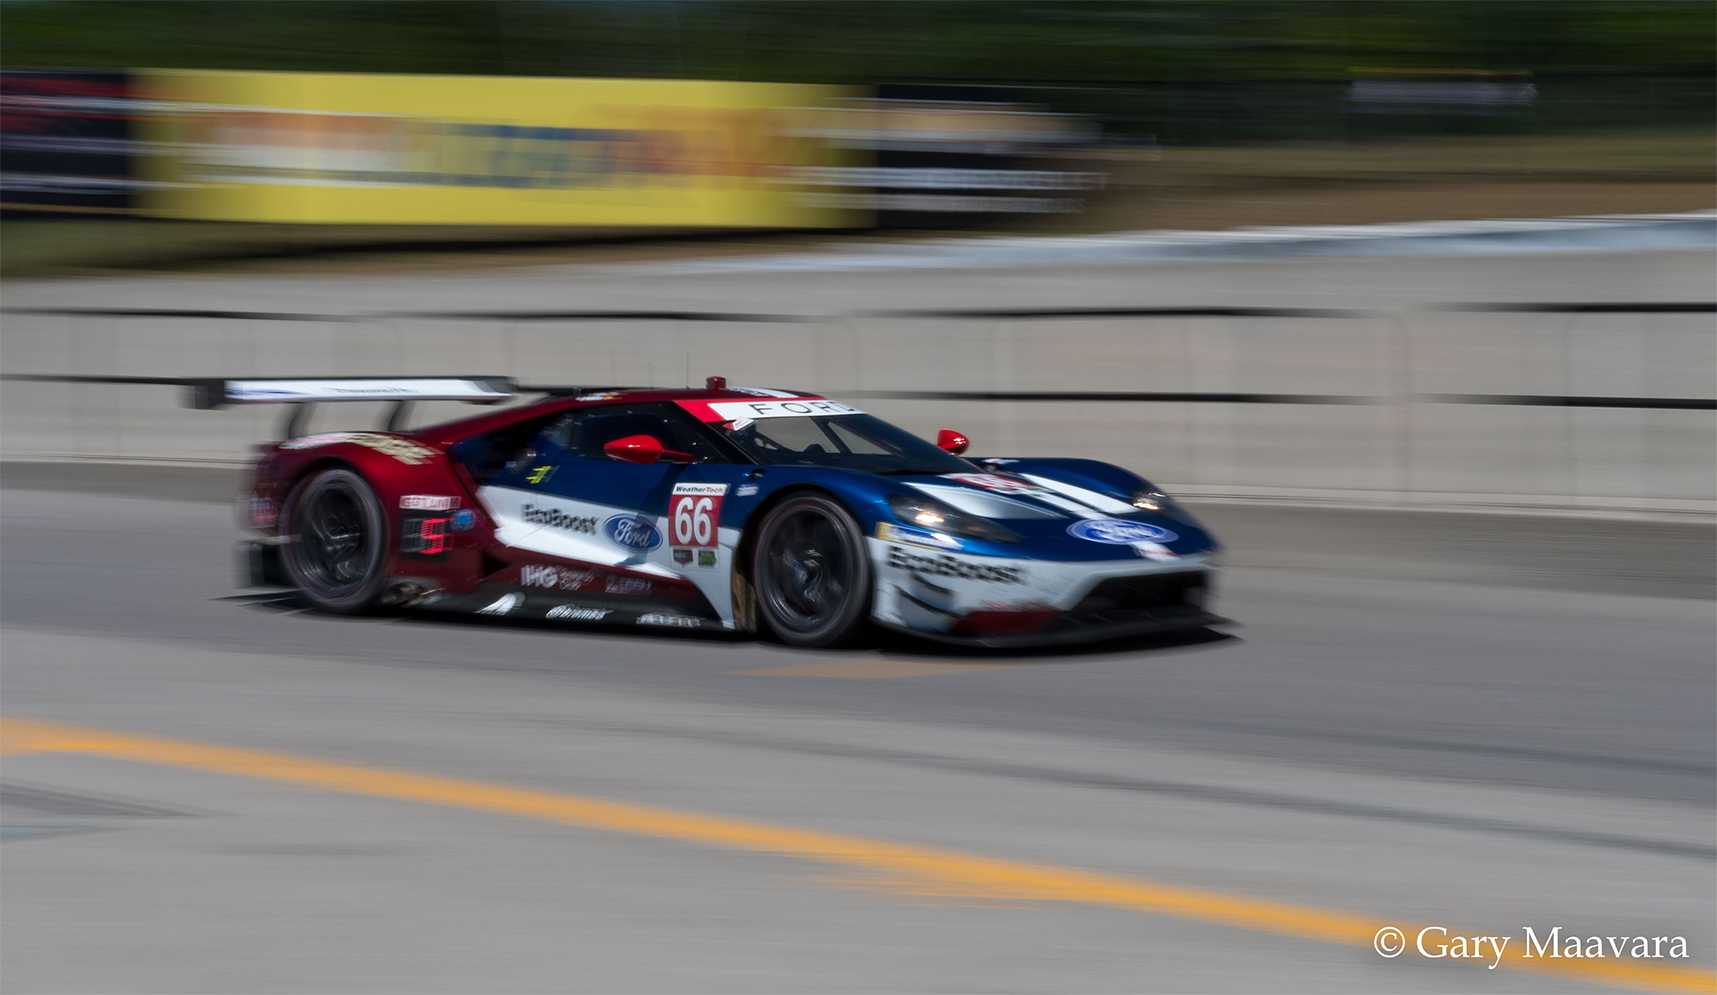 TrackWorthy-Mobil-1_66_Ford-GT_practice.jpg